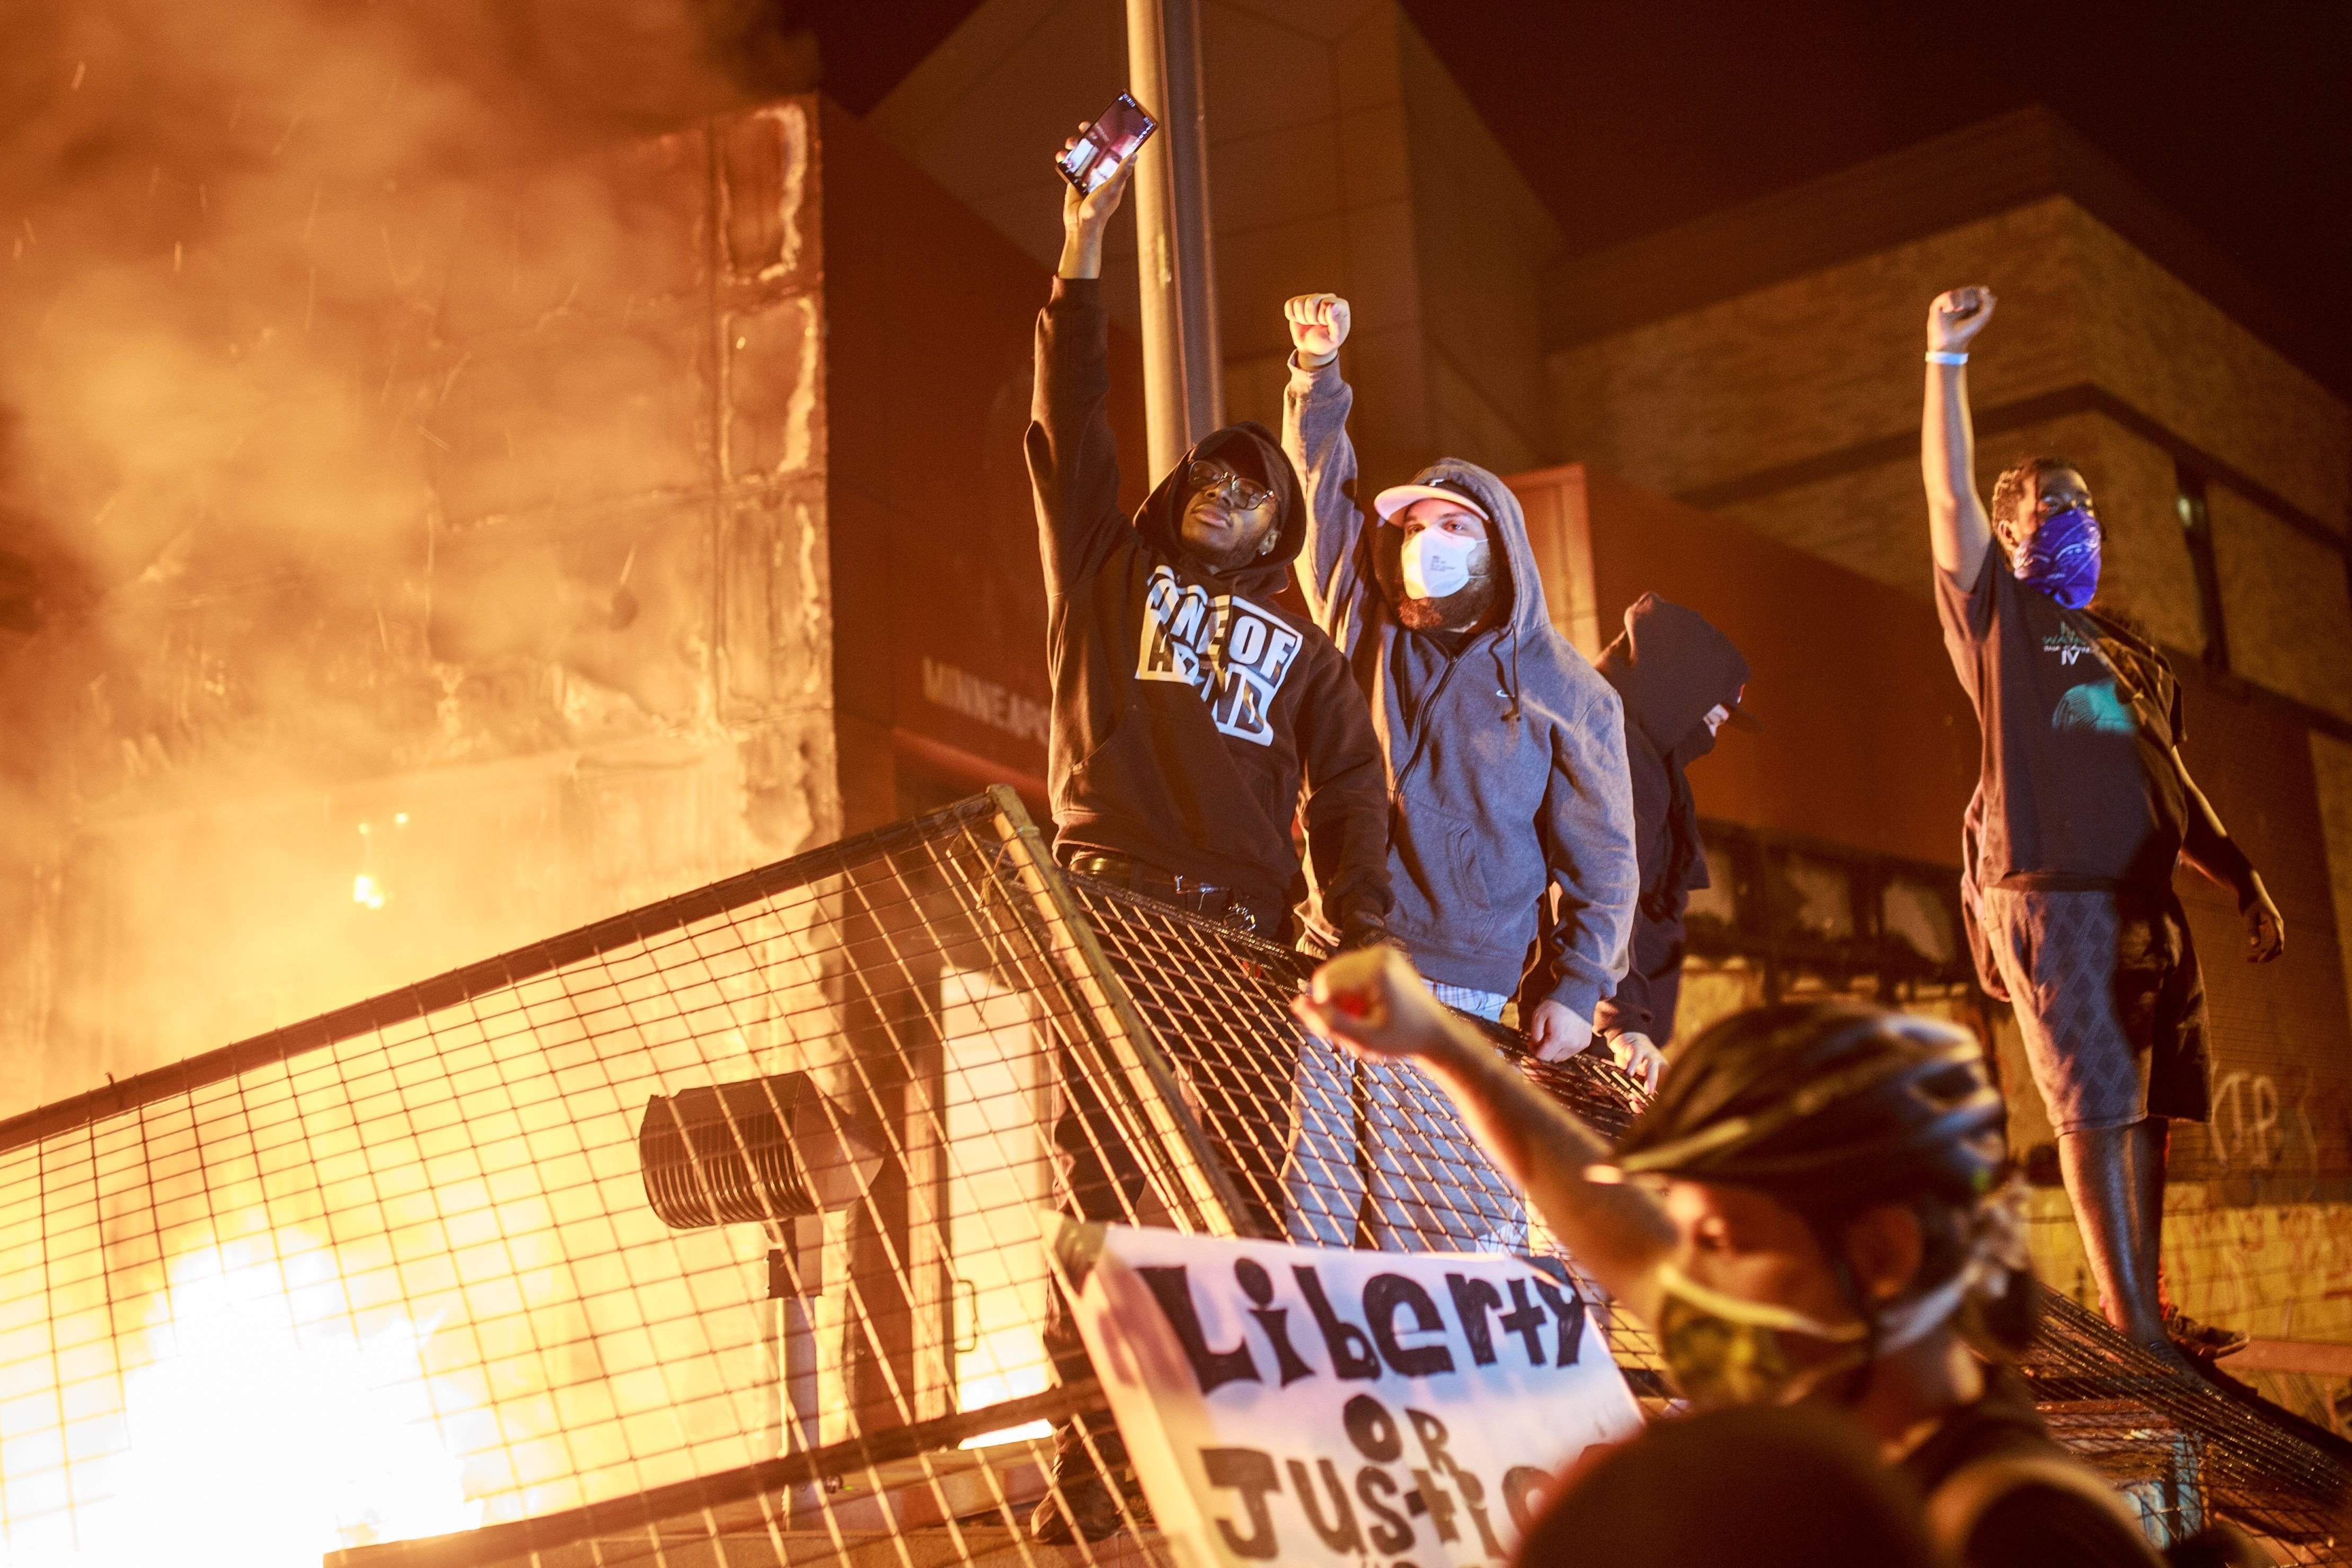 Protesters hold up their fists as flames rise behind them in front of the Third Police Precinct on May 28, 2020 in Minneapolis, Minnesota, during a protest over the death of George Floyd, an unarmed black man, who died after a police officer kneeled on his neck for several minutes. - A police precinct in Minnesota went up in flames late on May 28 in a third day of demonstrations as the so-called Twin Cities of Minneapolis and St. Paul seethed over the shocking police killing of a handcuffed black man. The precinct, which police had abandoned, burned after a group of protesters pushed through barriers around the building, breaking windows and chanting slogans. A much larger crowd demonstrated as the building went up in flames. (Photo by Kerem Yucel / AFP) (Photo by KEREM YUCEL/AFP via Getty Images)